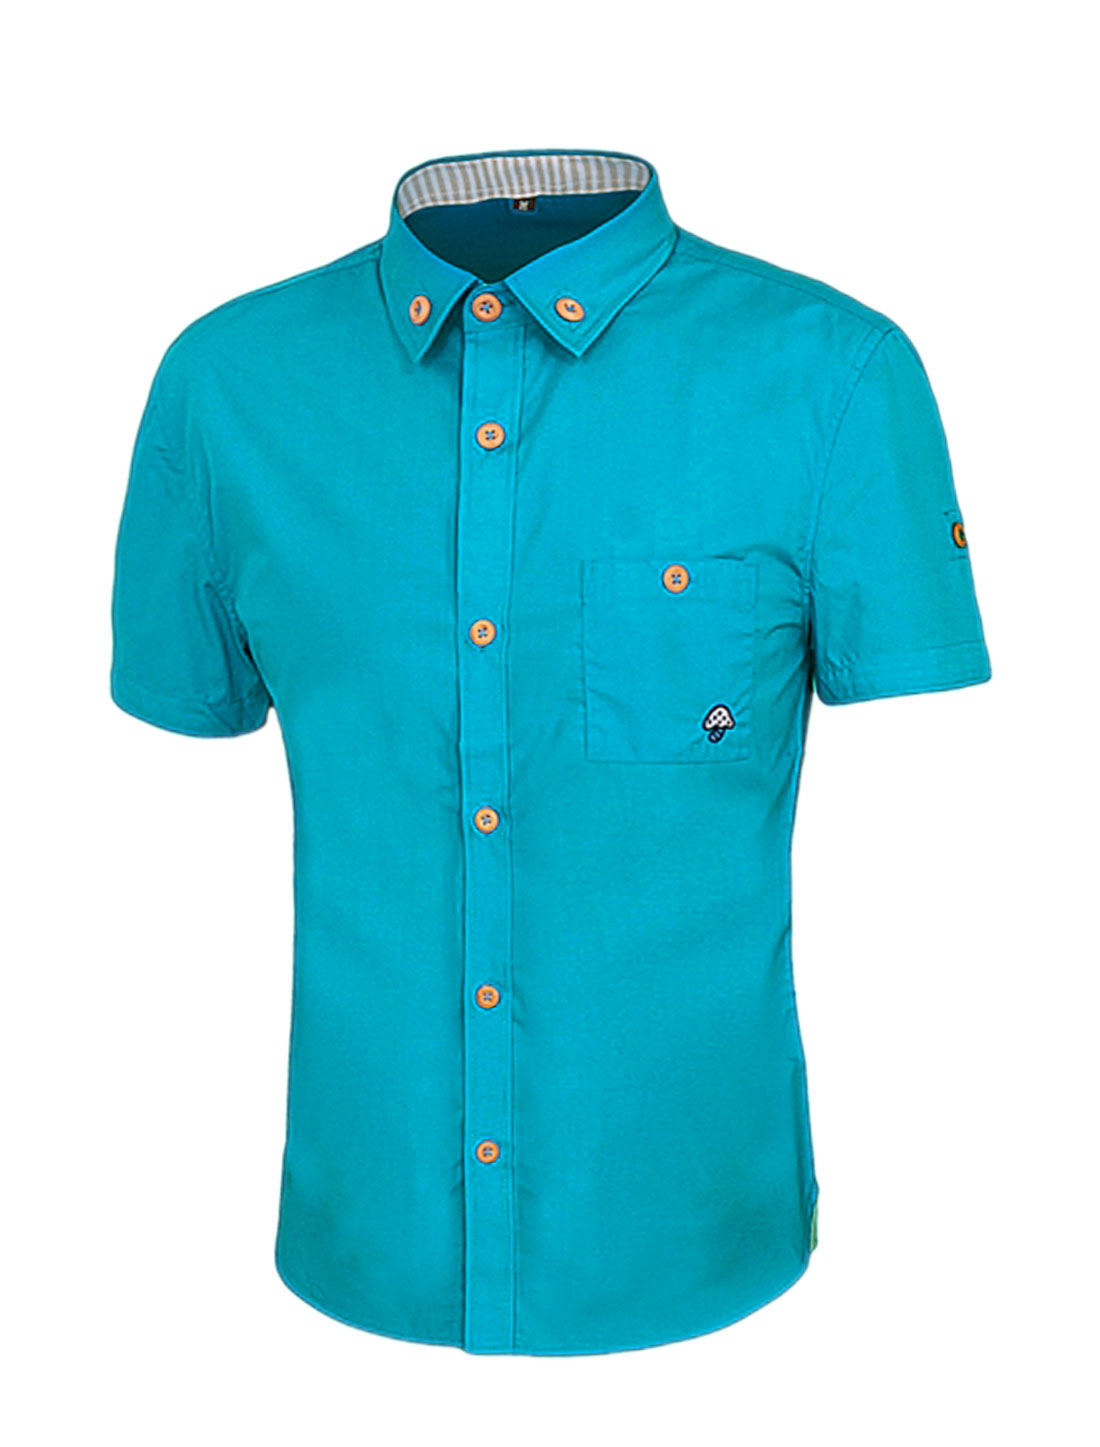 Men Short Sleeves Point Collar Slim Fit Button Down Shirt Blue M